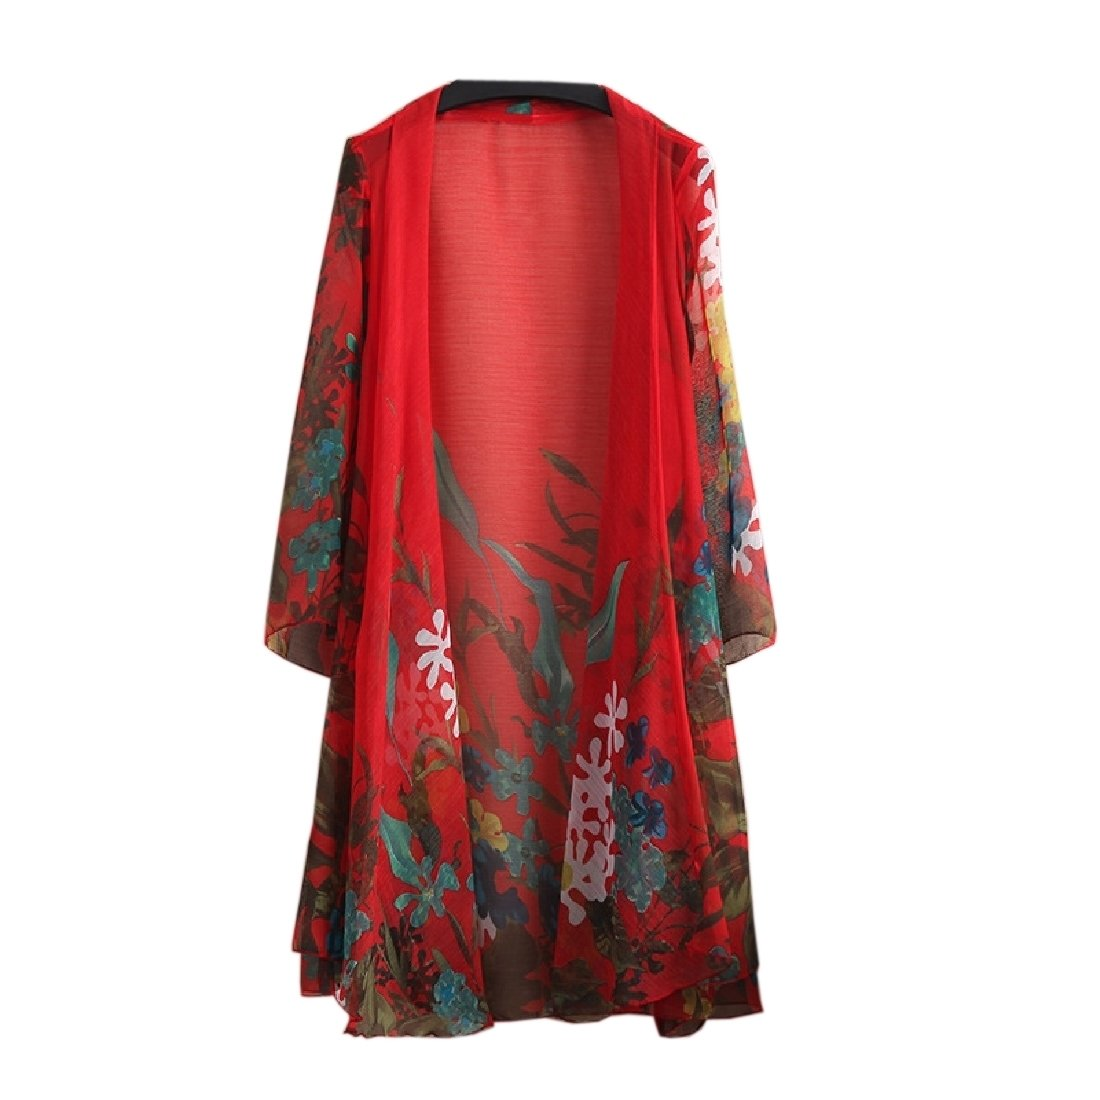 YUNY Women Chiffon Floral Longline Relaxed Fit Coat Sunscreen Clothing Red 3XL